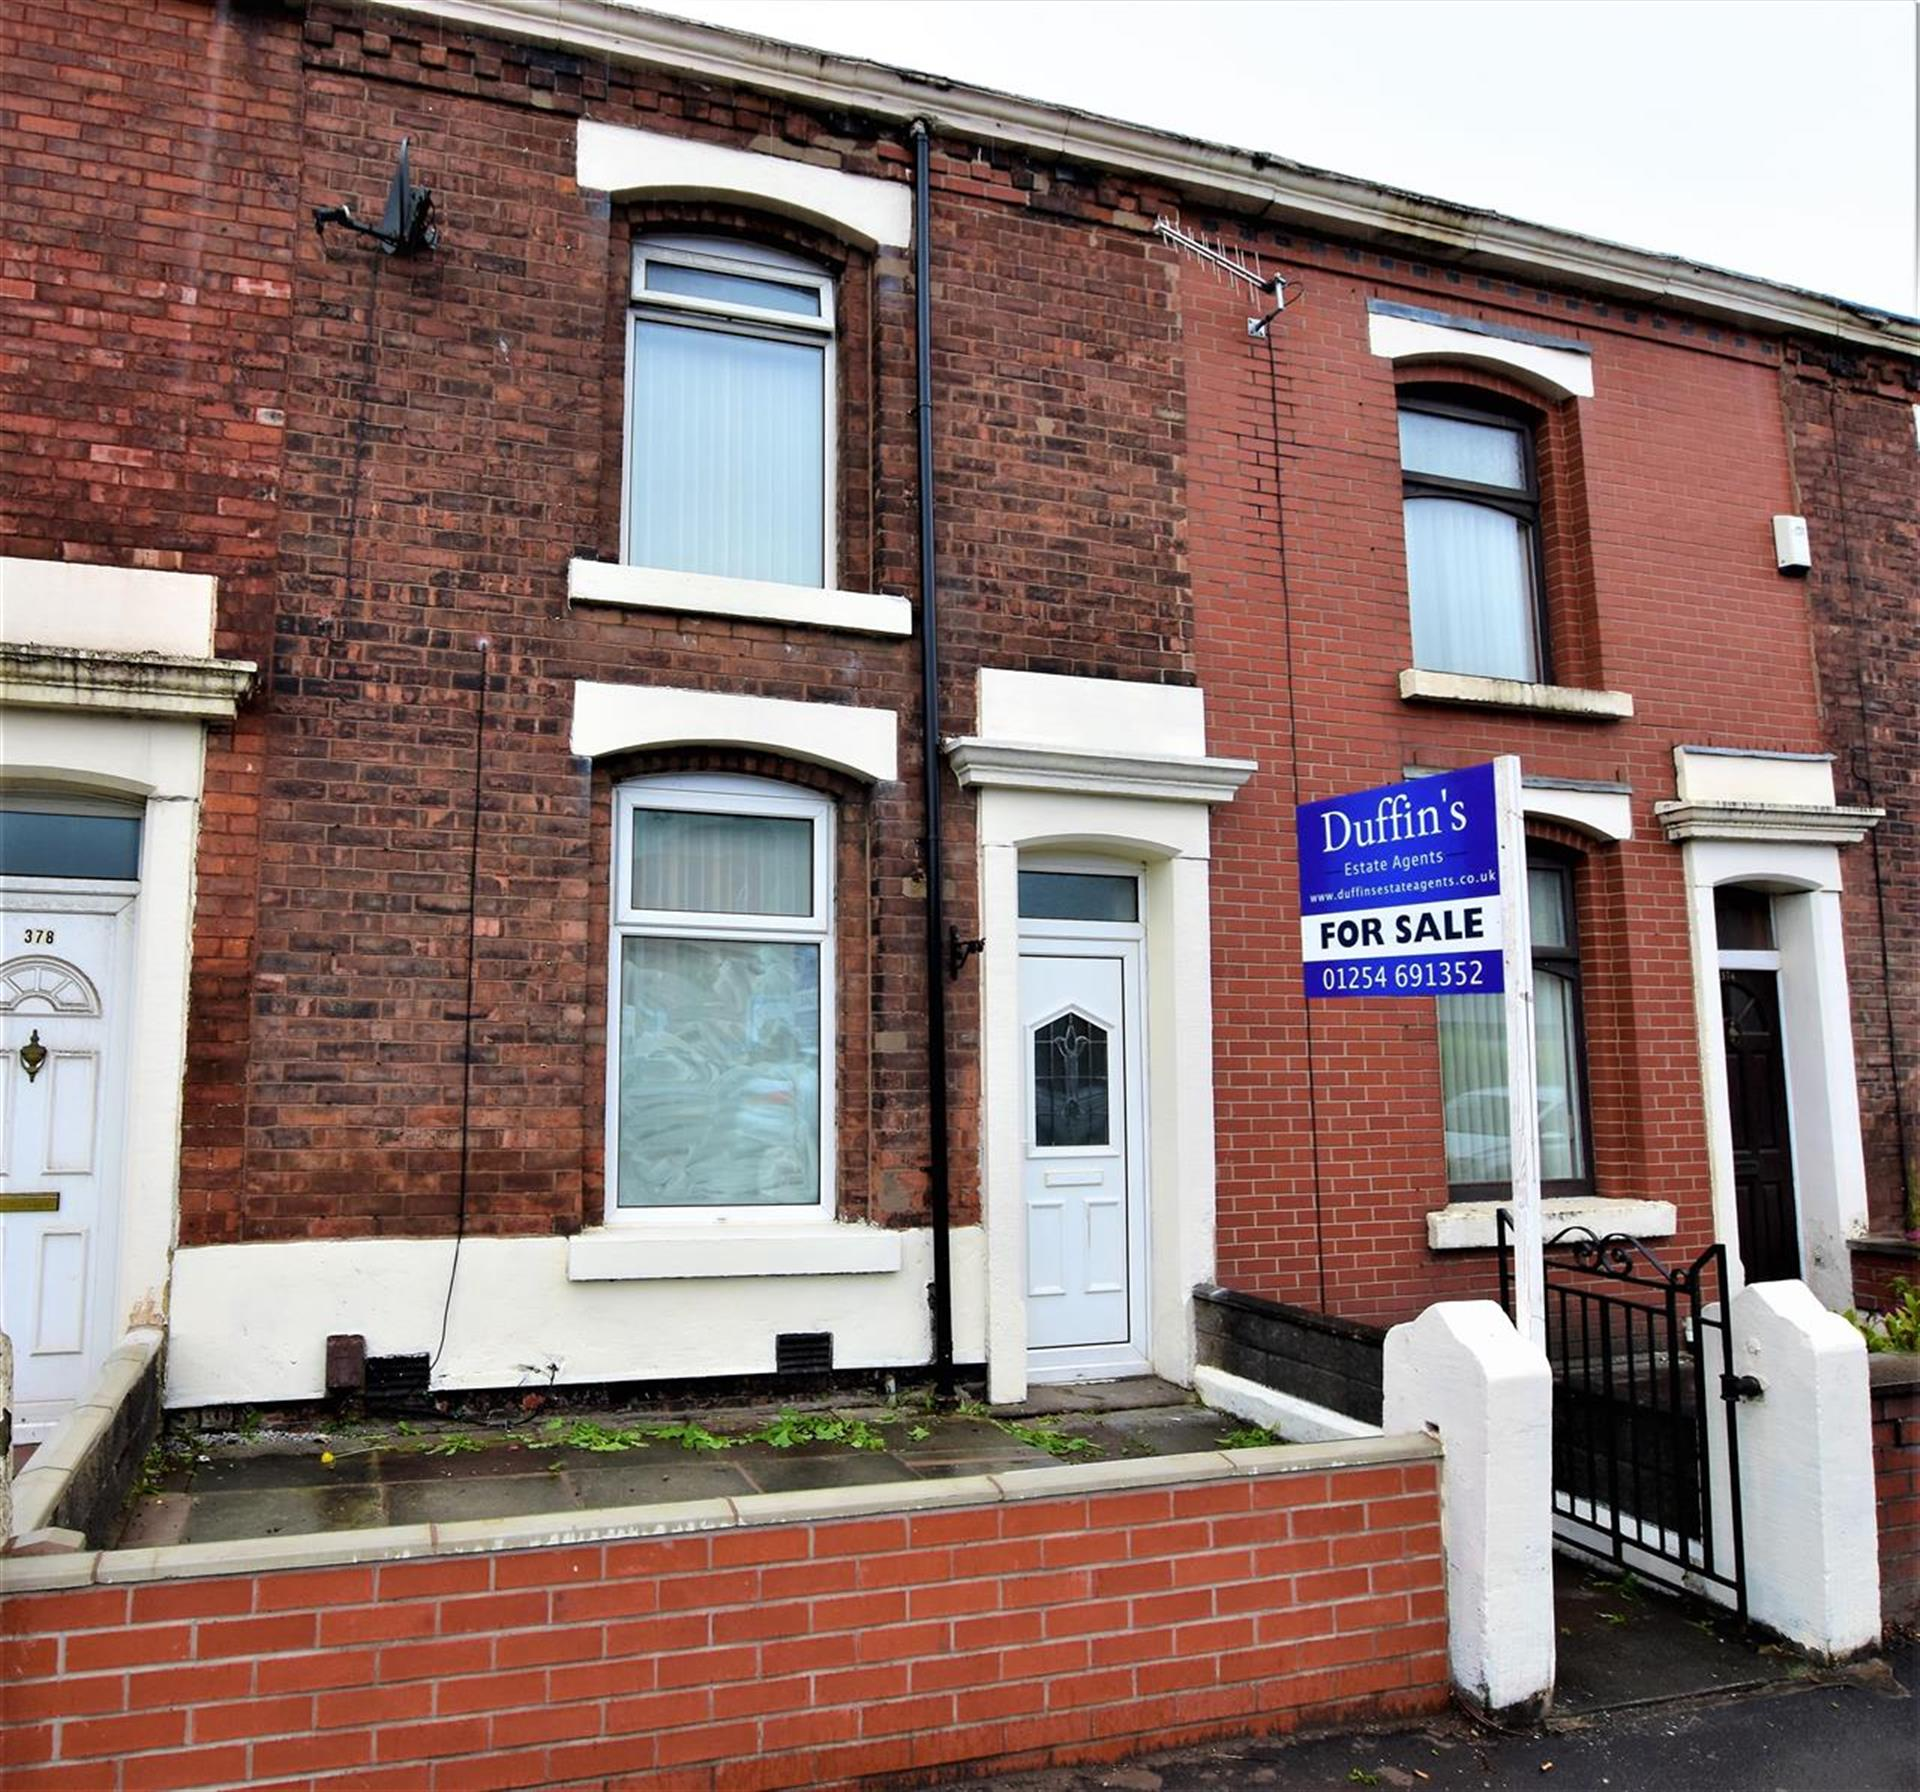 2 Bedroom Terraced House For Sale - Main Picture